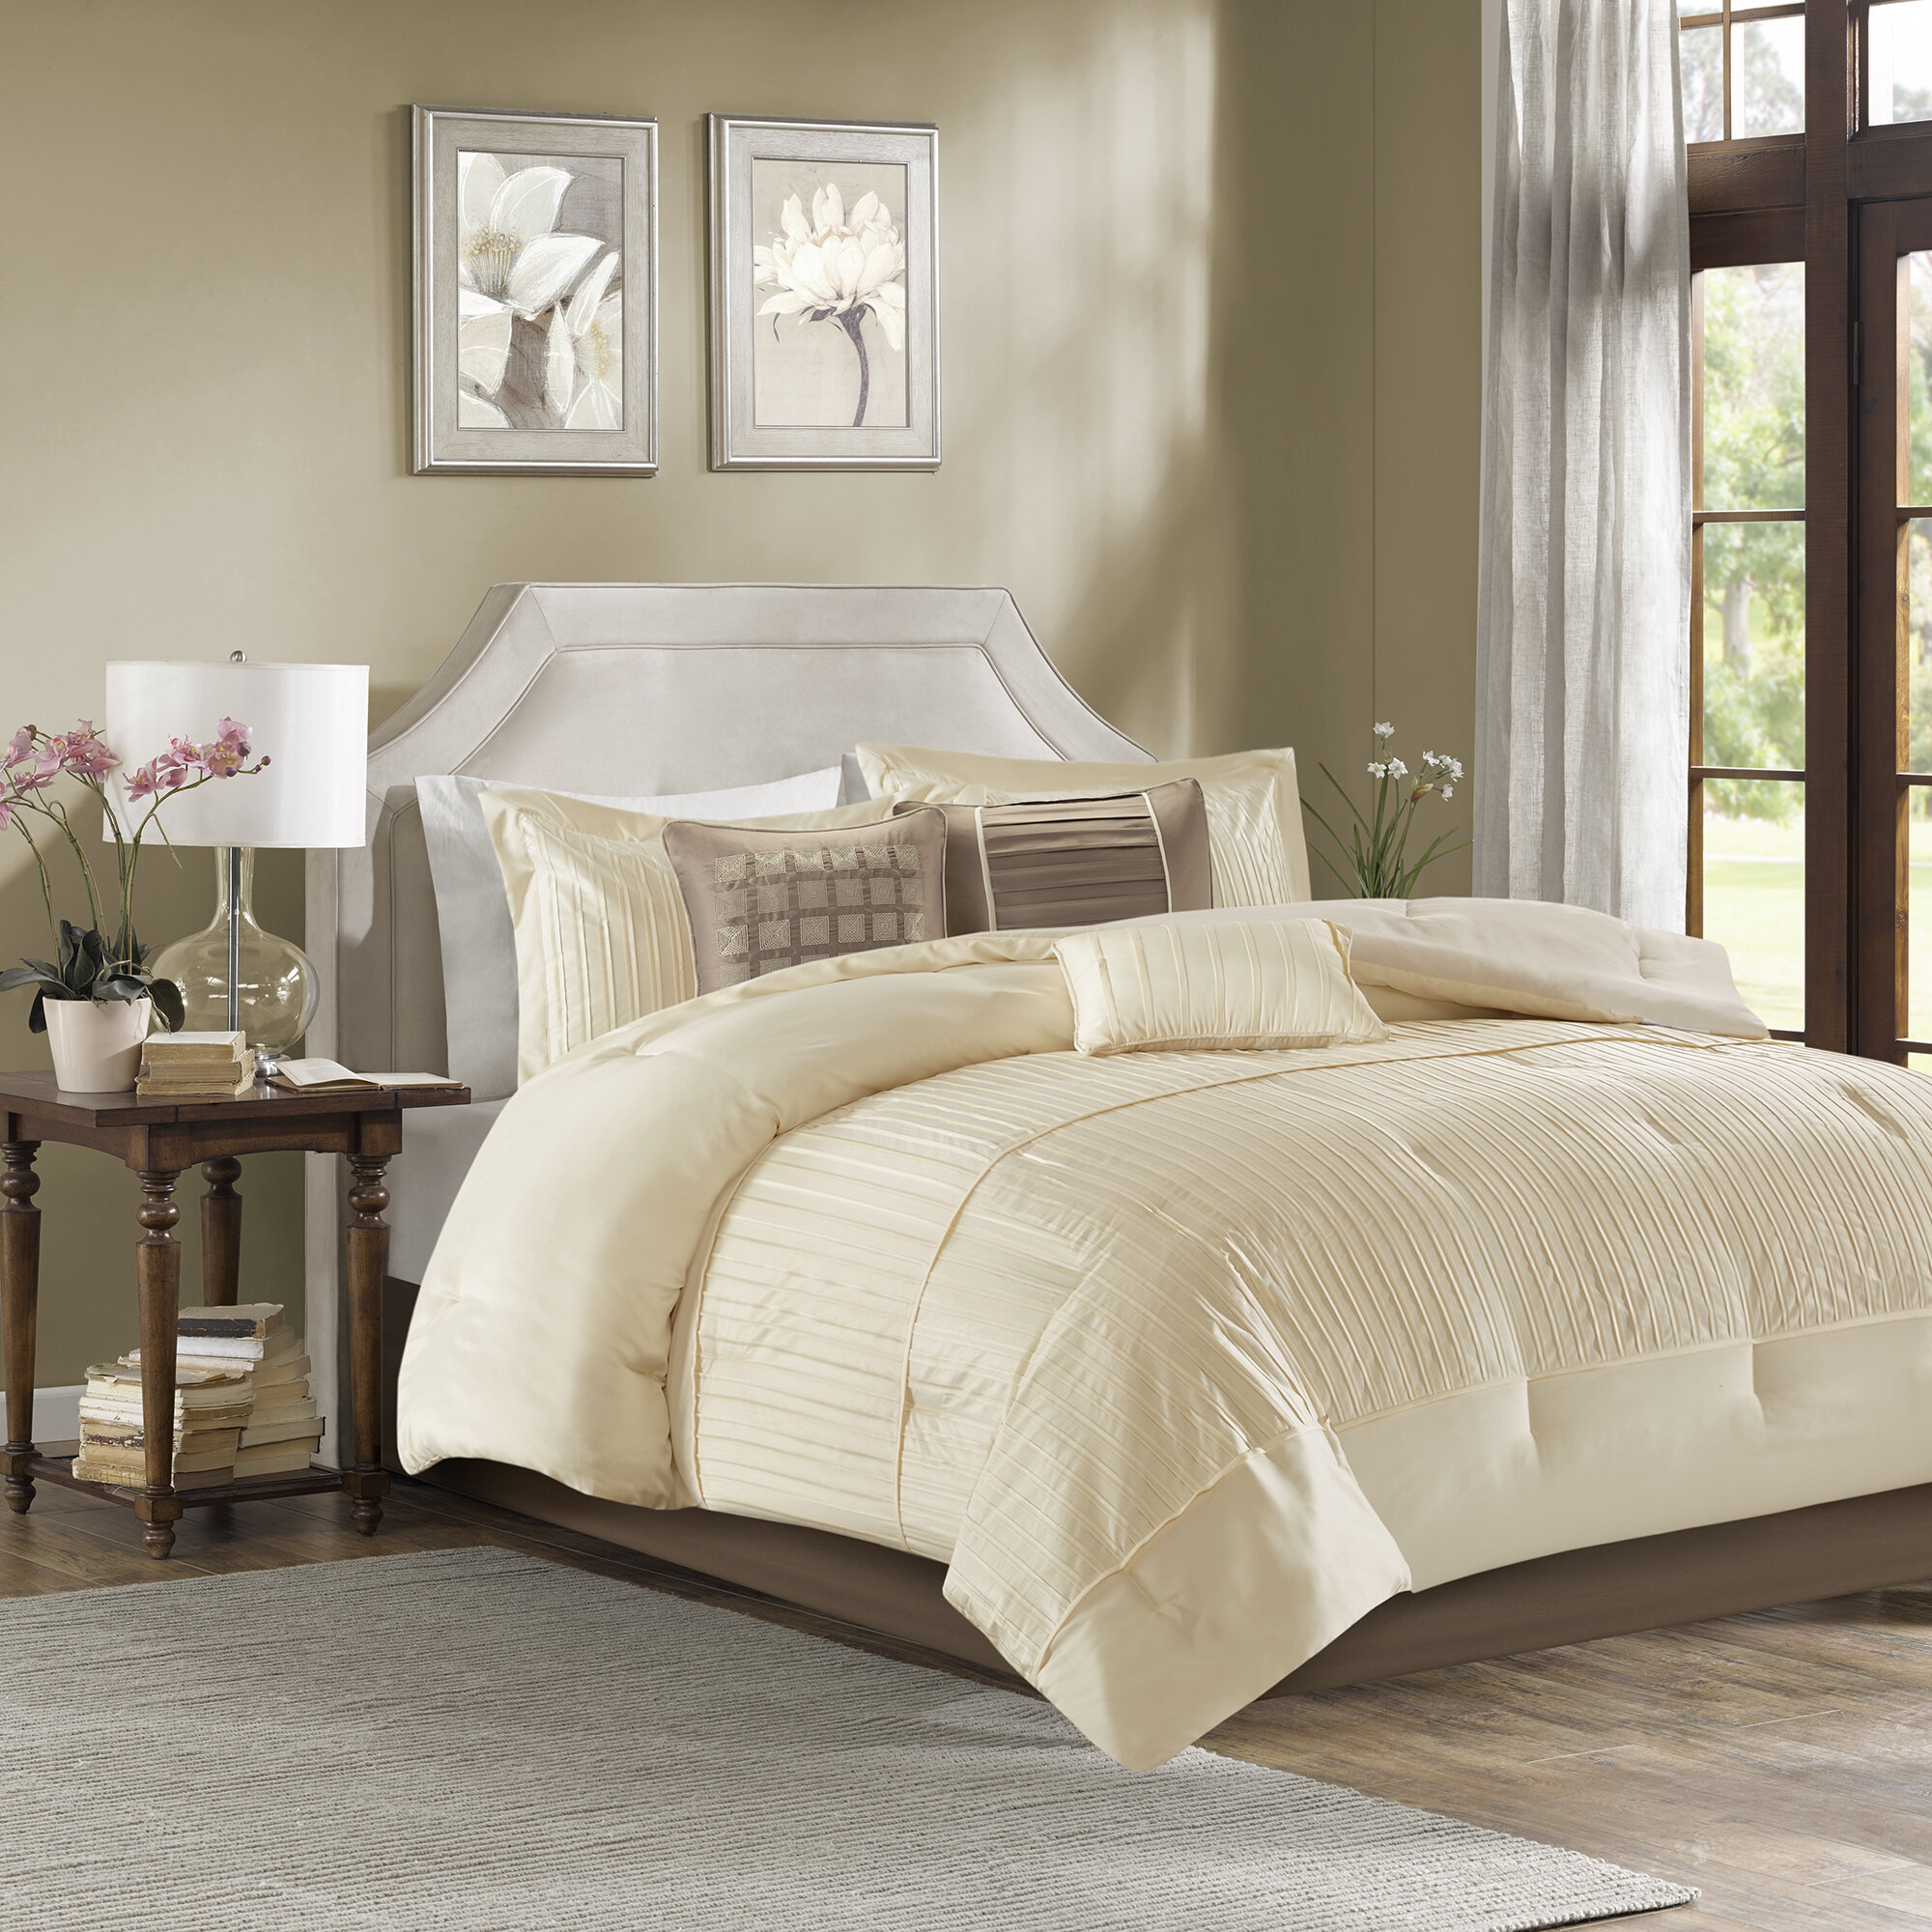 of and bedding sets best warm comforter rustic quilts the set comforters